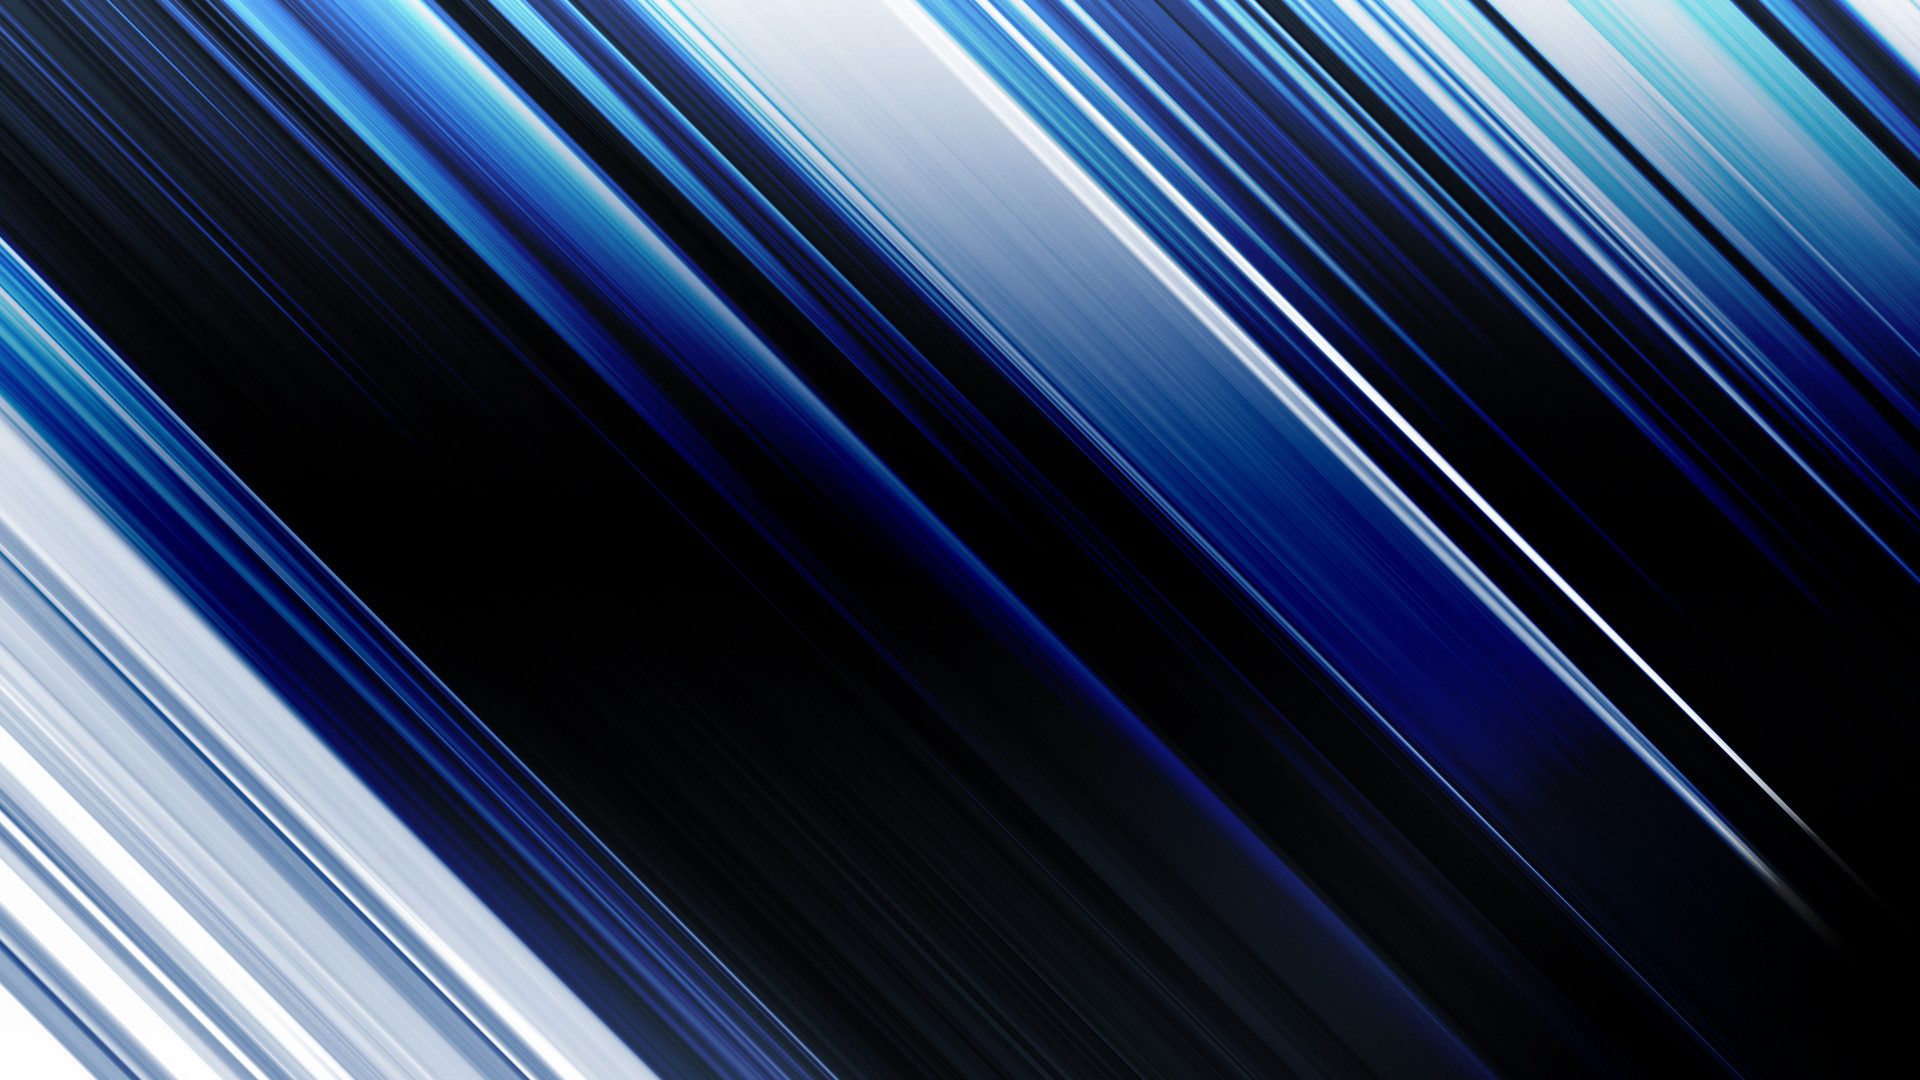 Blue Background Abstract Best Background 1743 Full HD Wide 1920x1080